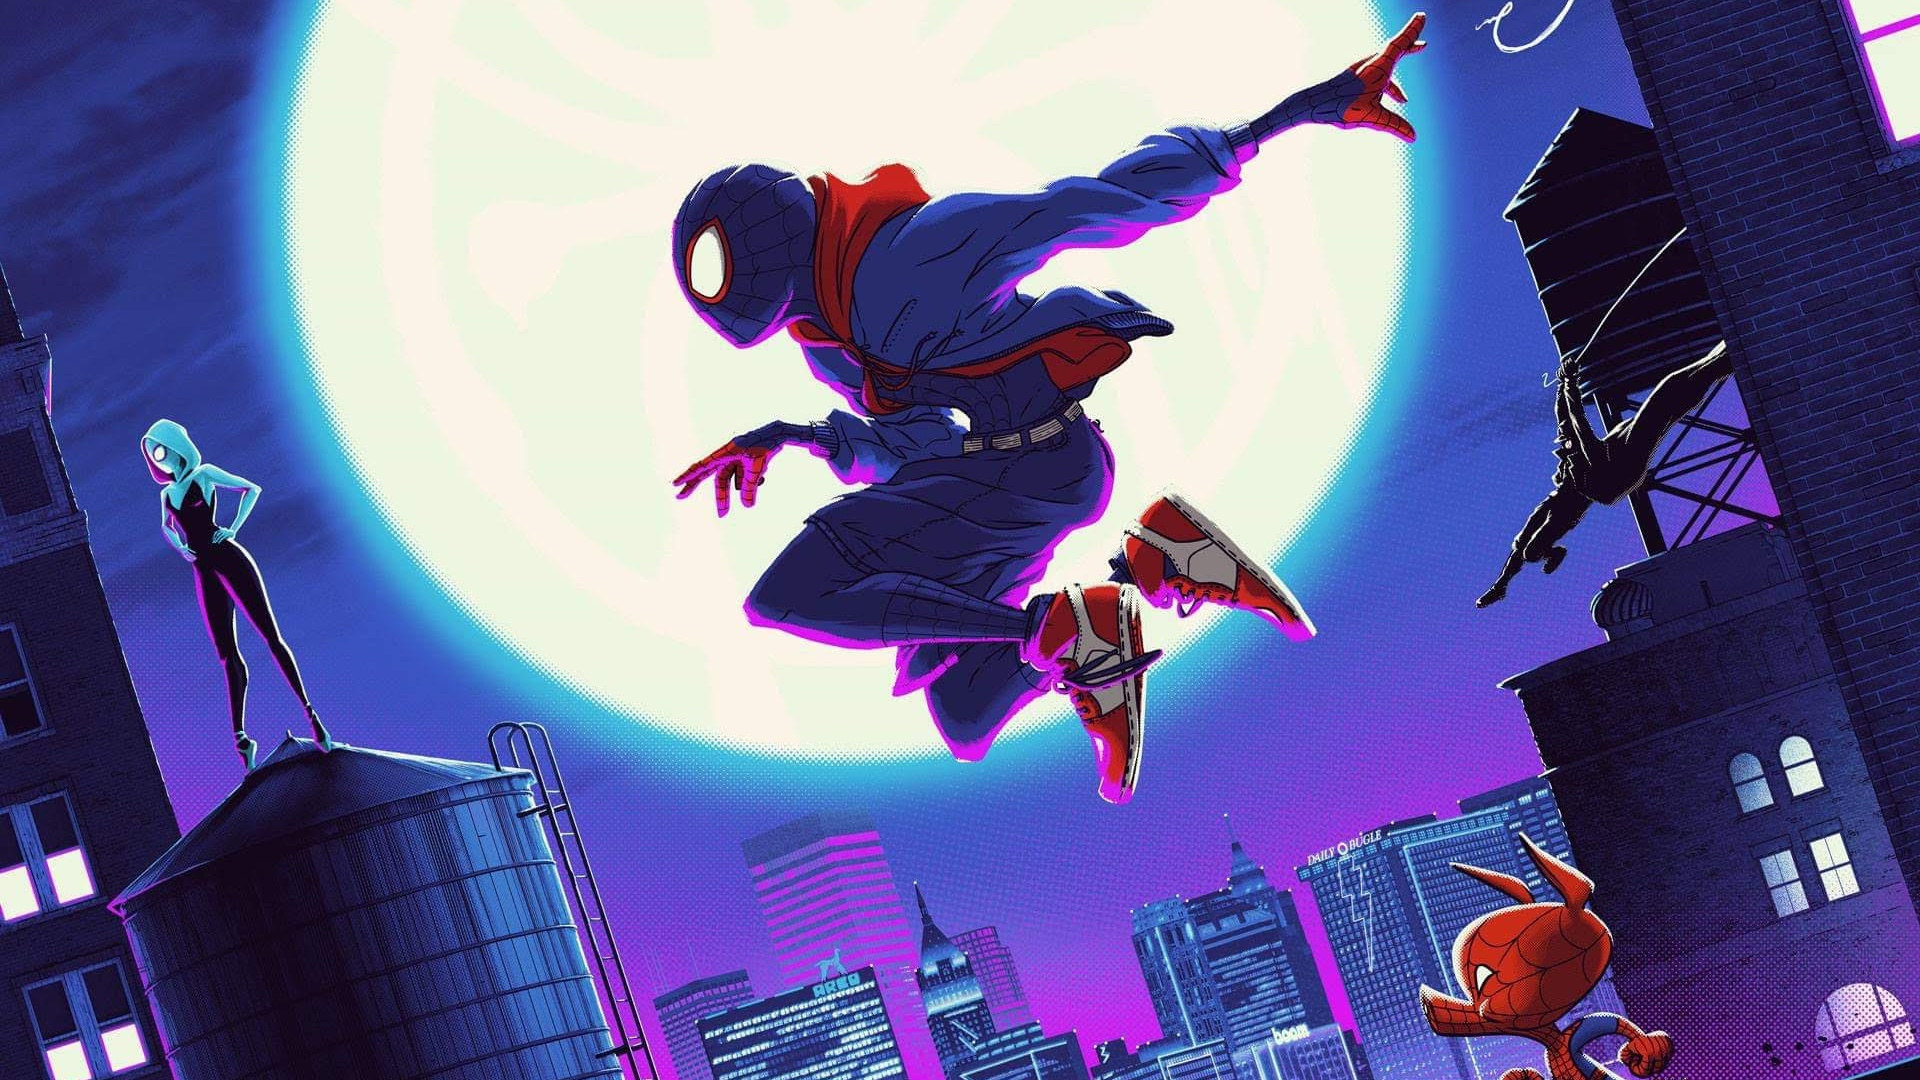 This Cool Spider Man Into The Spider Verse Poster Art From Matt